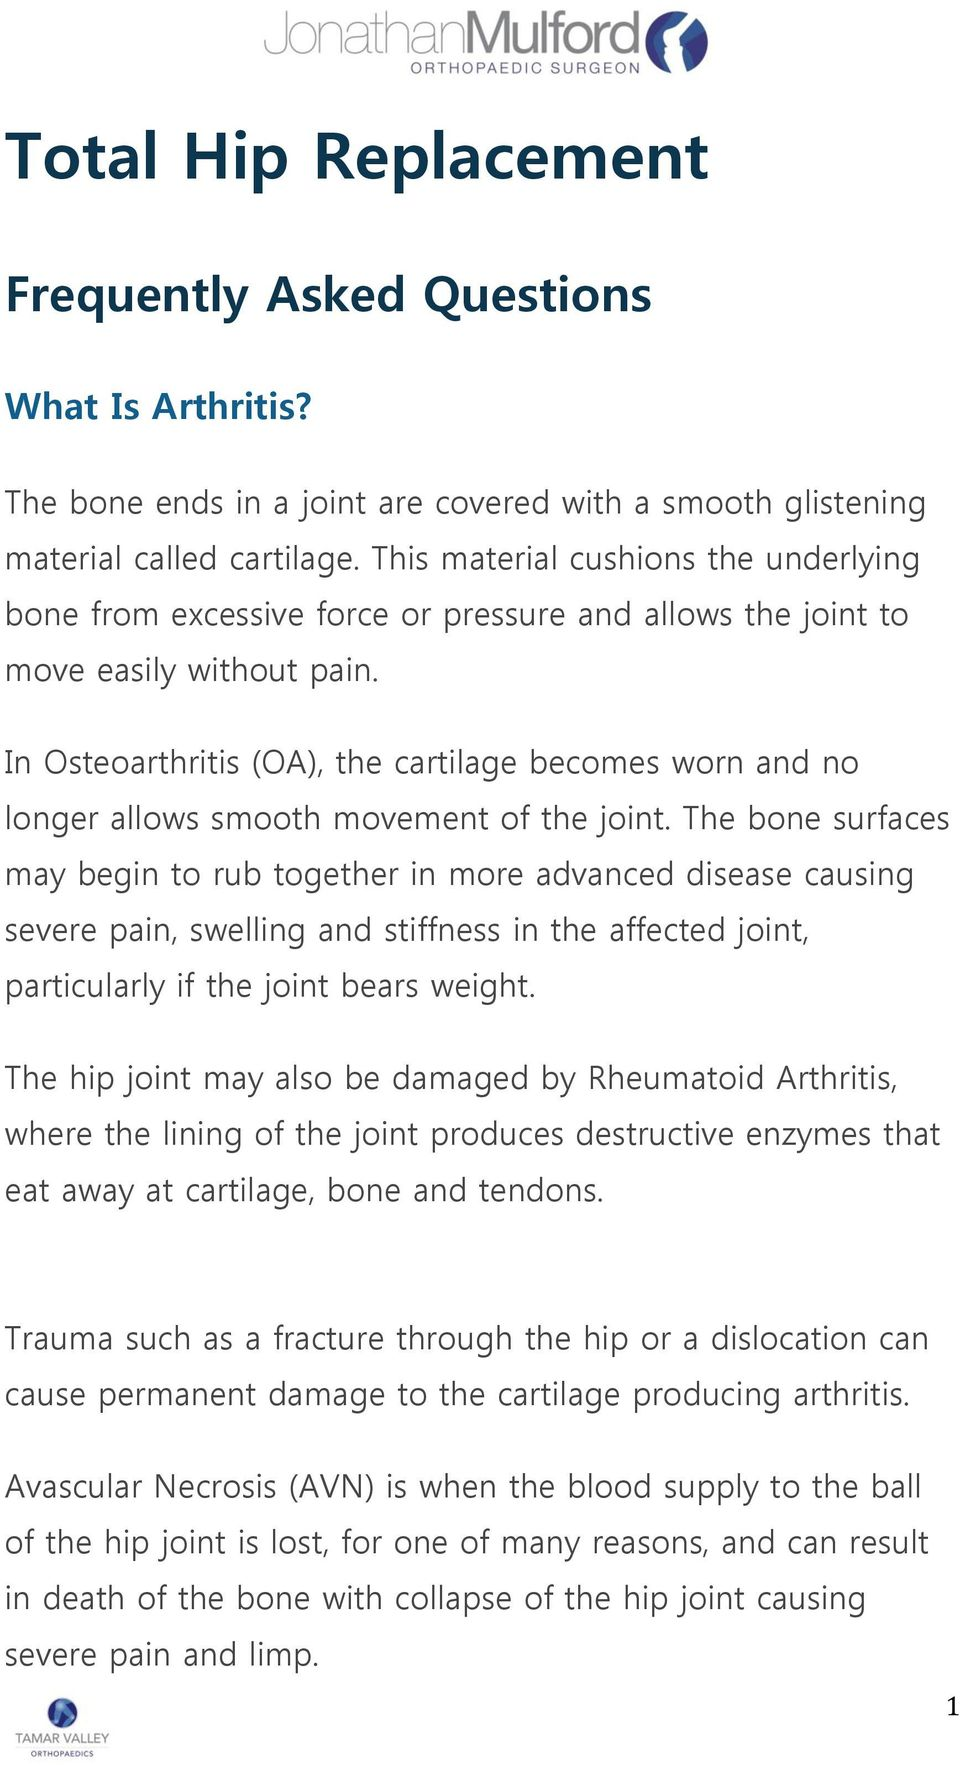 In Osteoarthritis (OA), the cartilage becomes worn and no longer allows smooth movement of the joint.